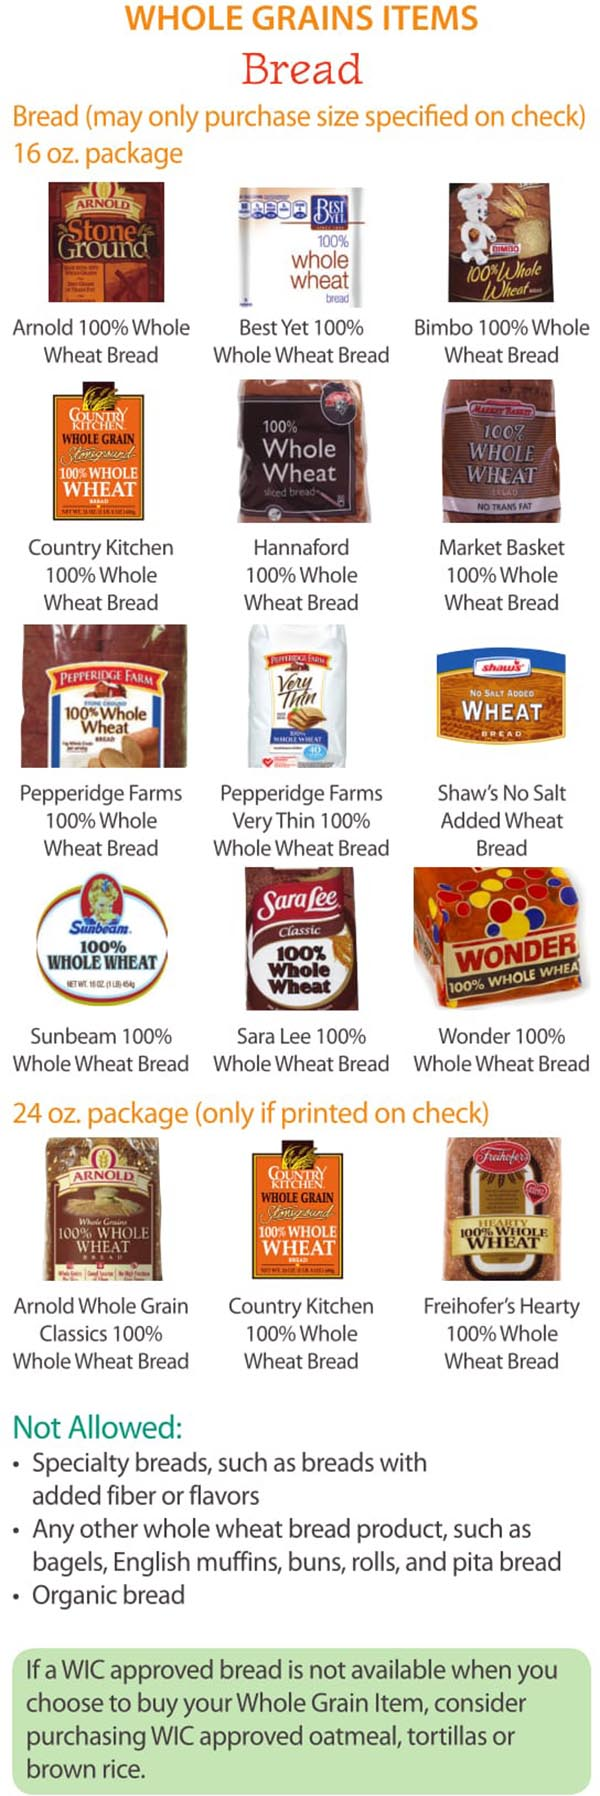 Maine WIC Food List Whole Grain and Bread